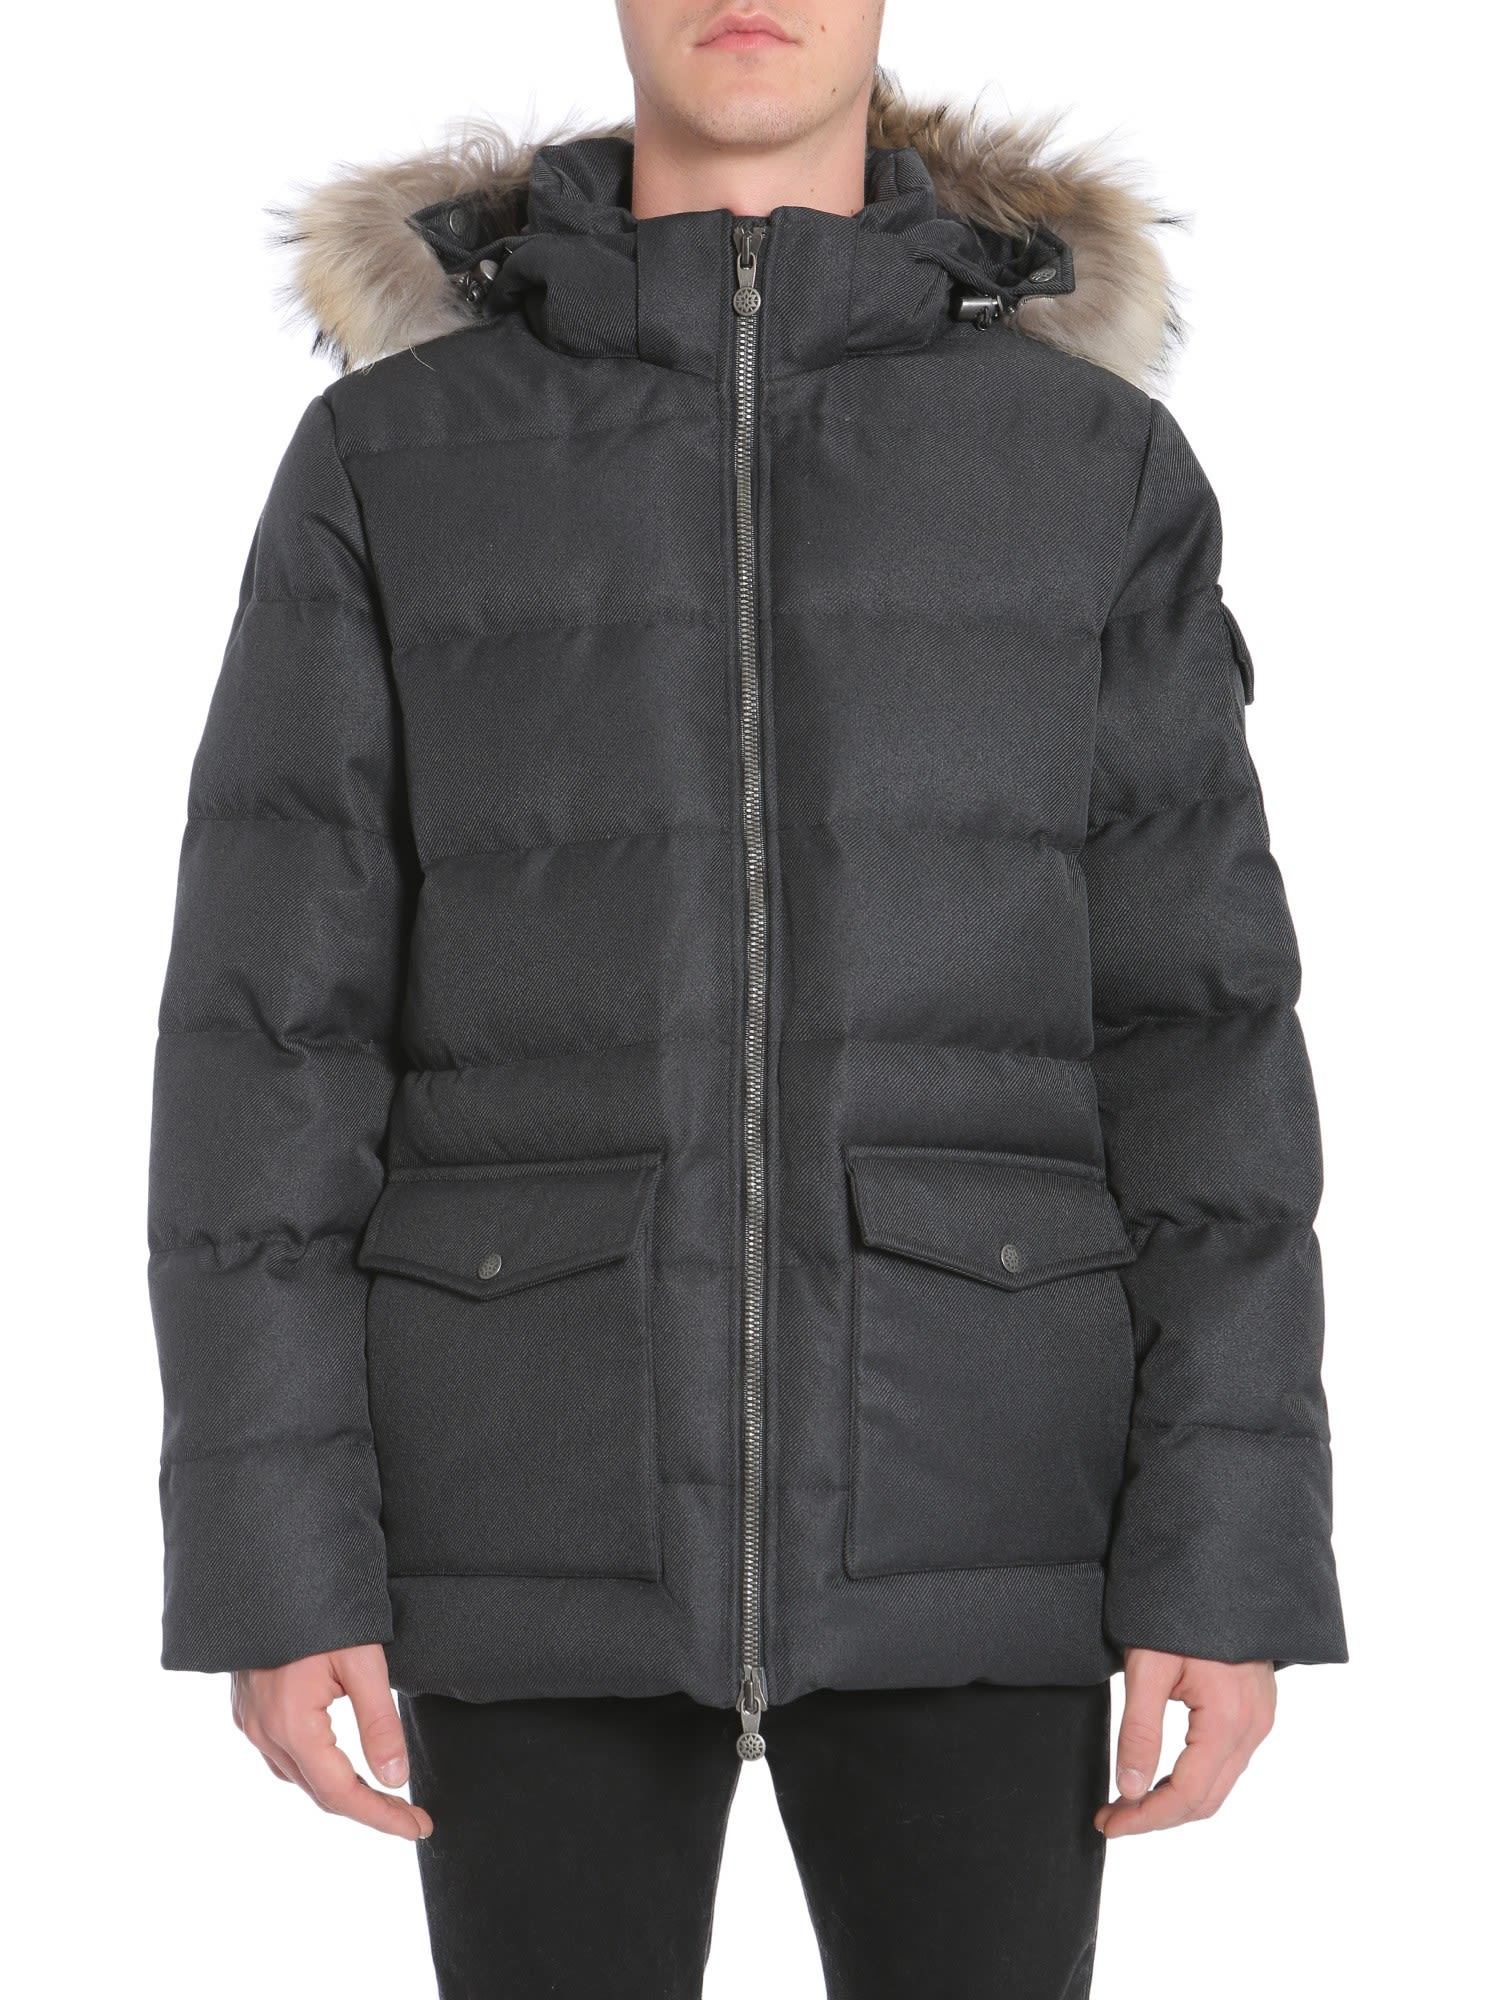 Authentic Down Jacket